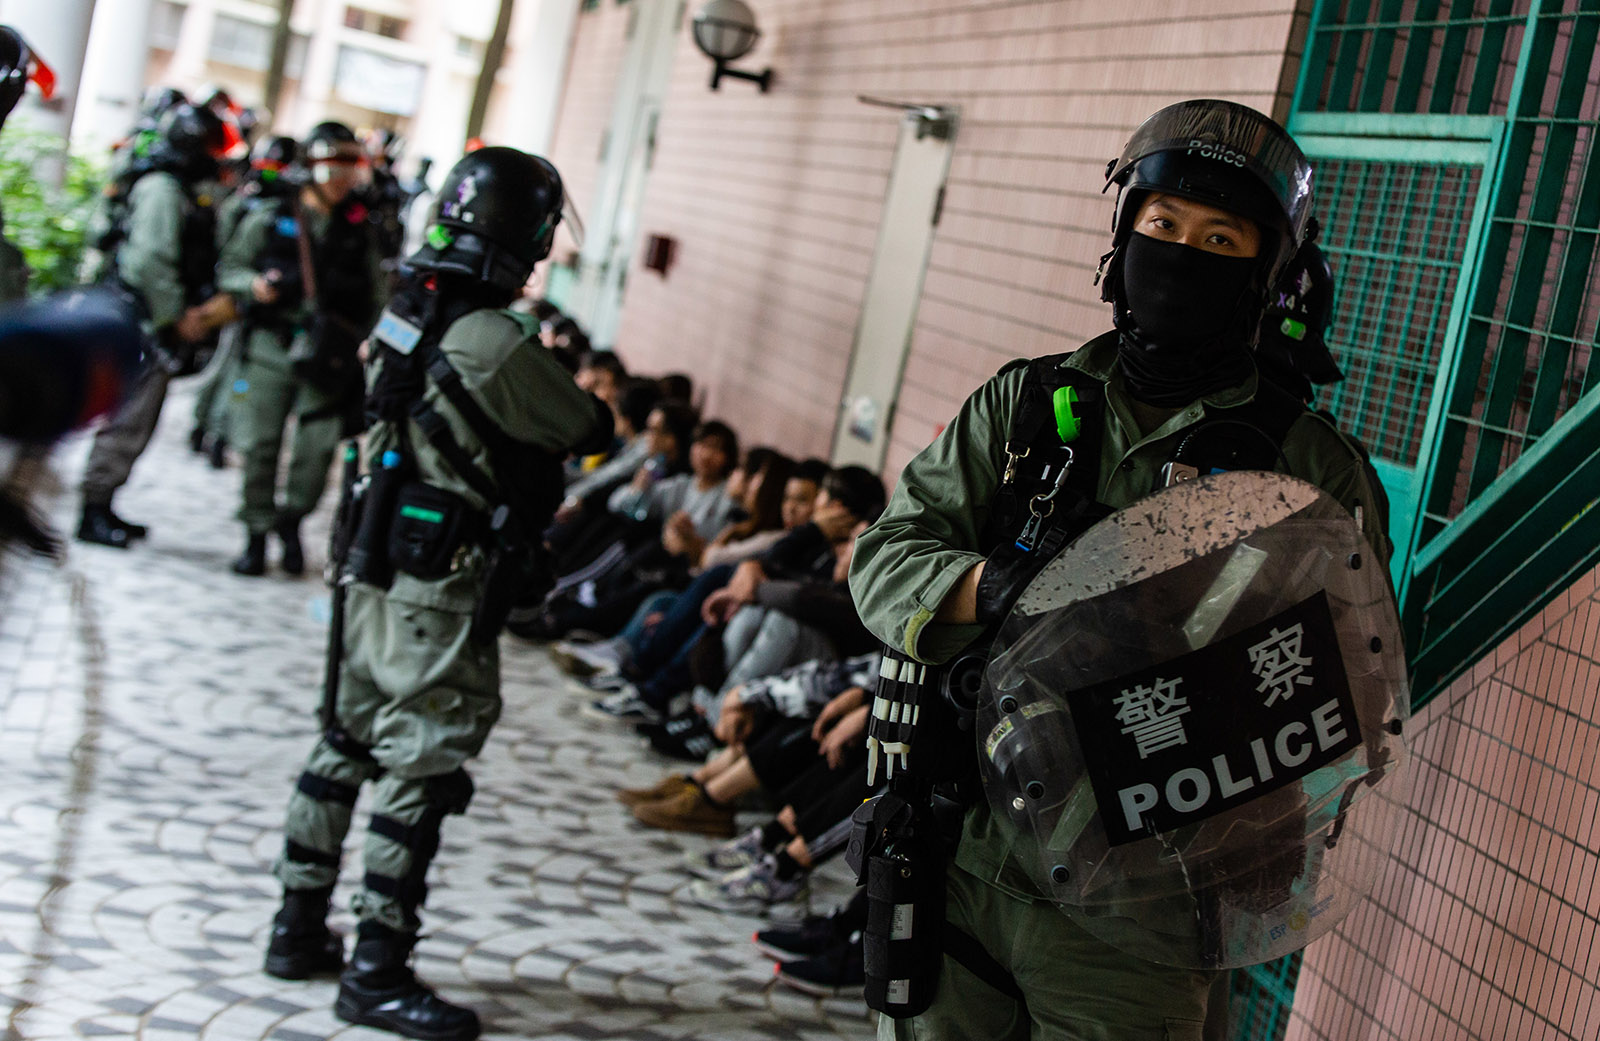 Police in riot gear rounding up suspected protesters, Hong Kong